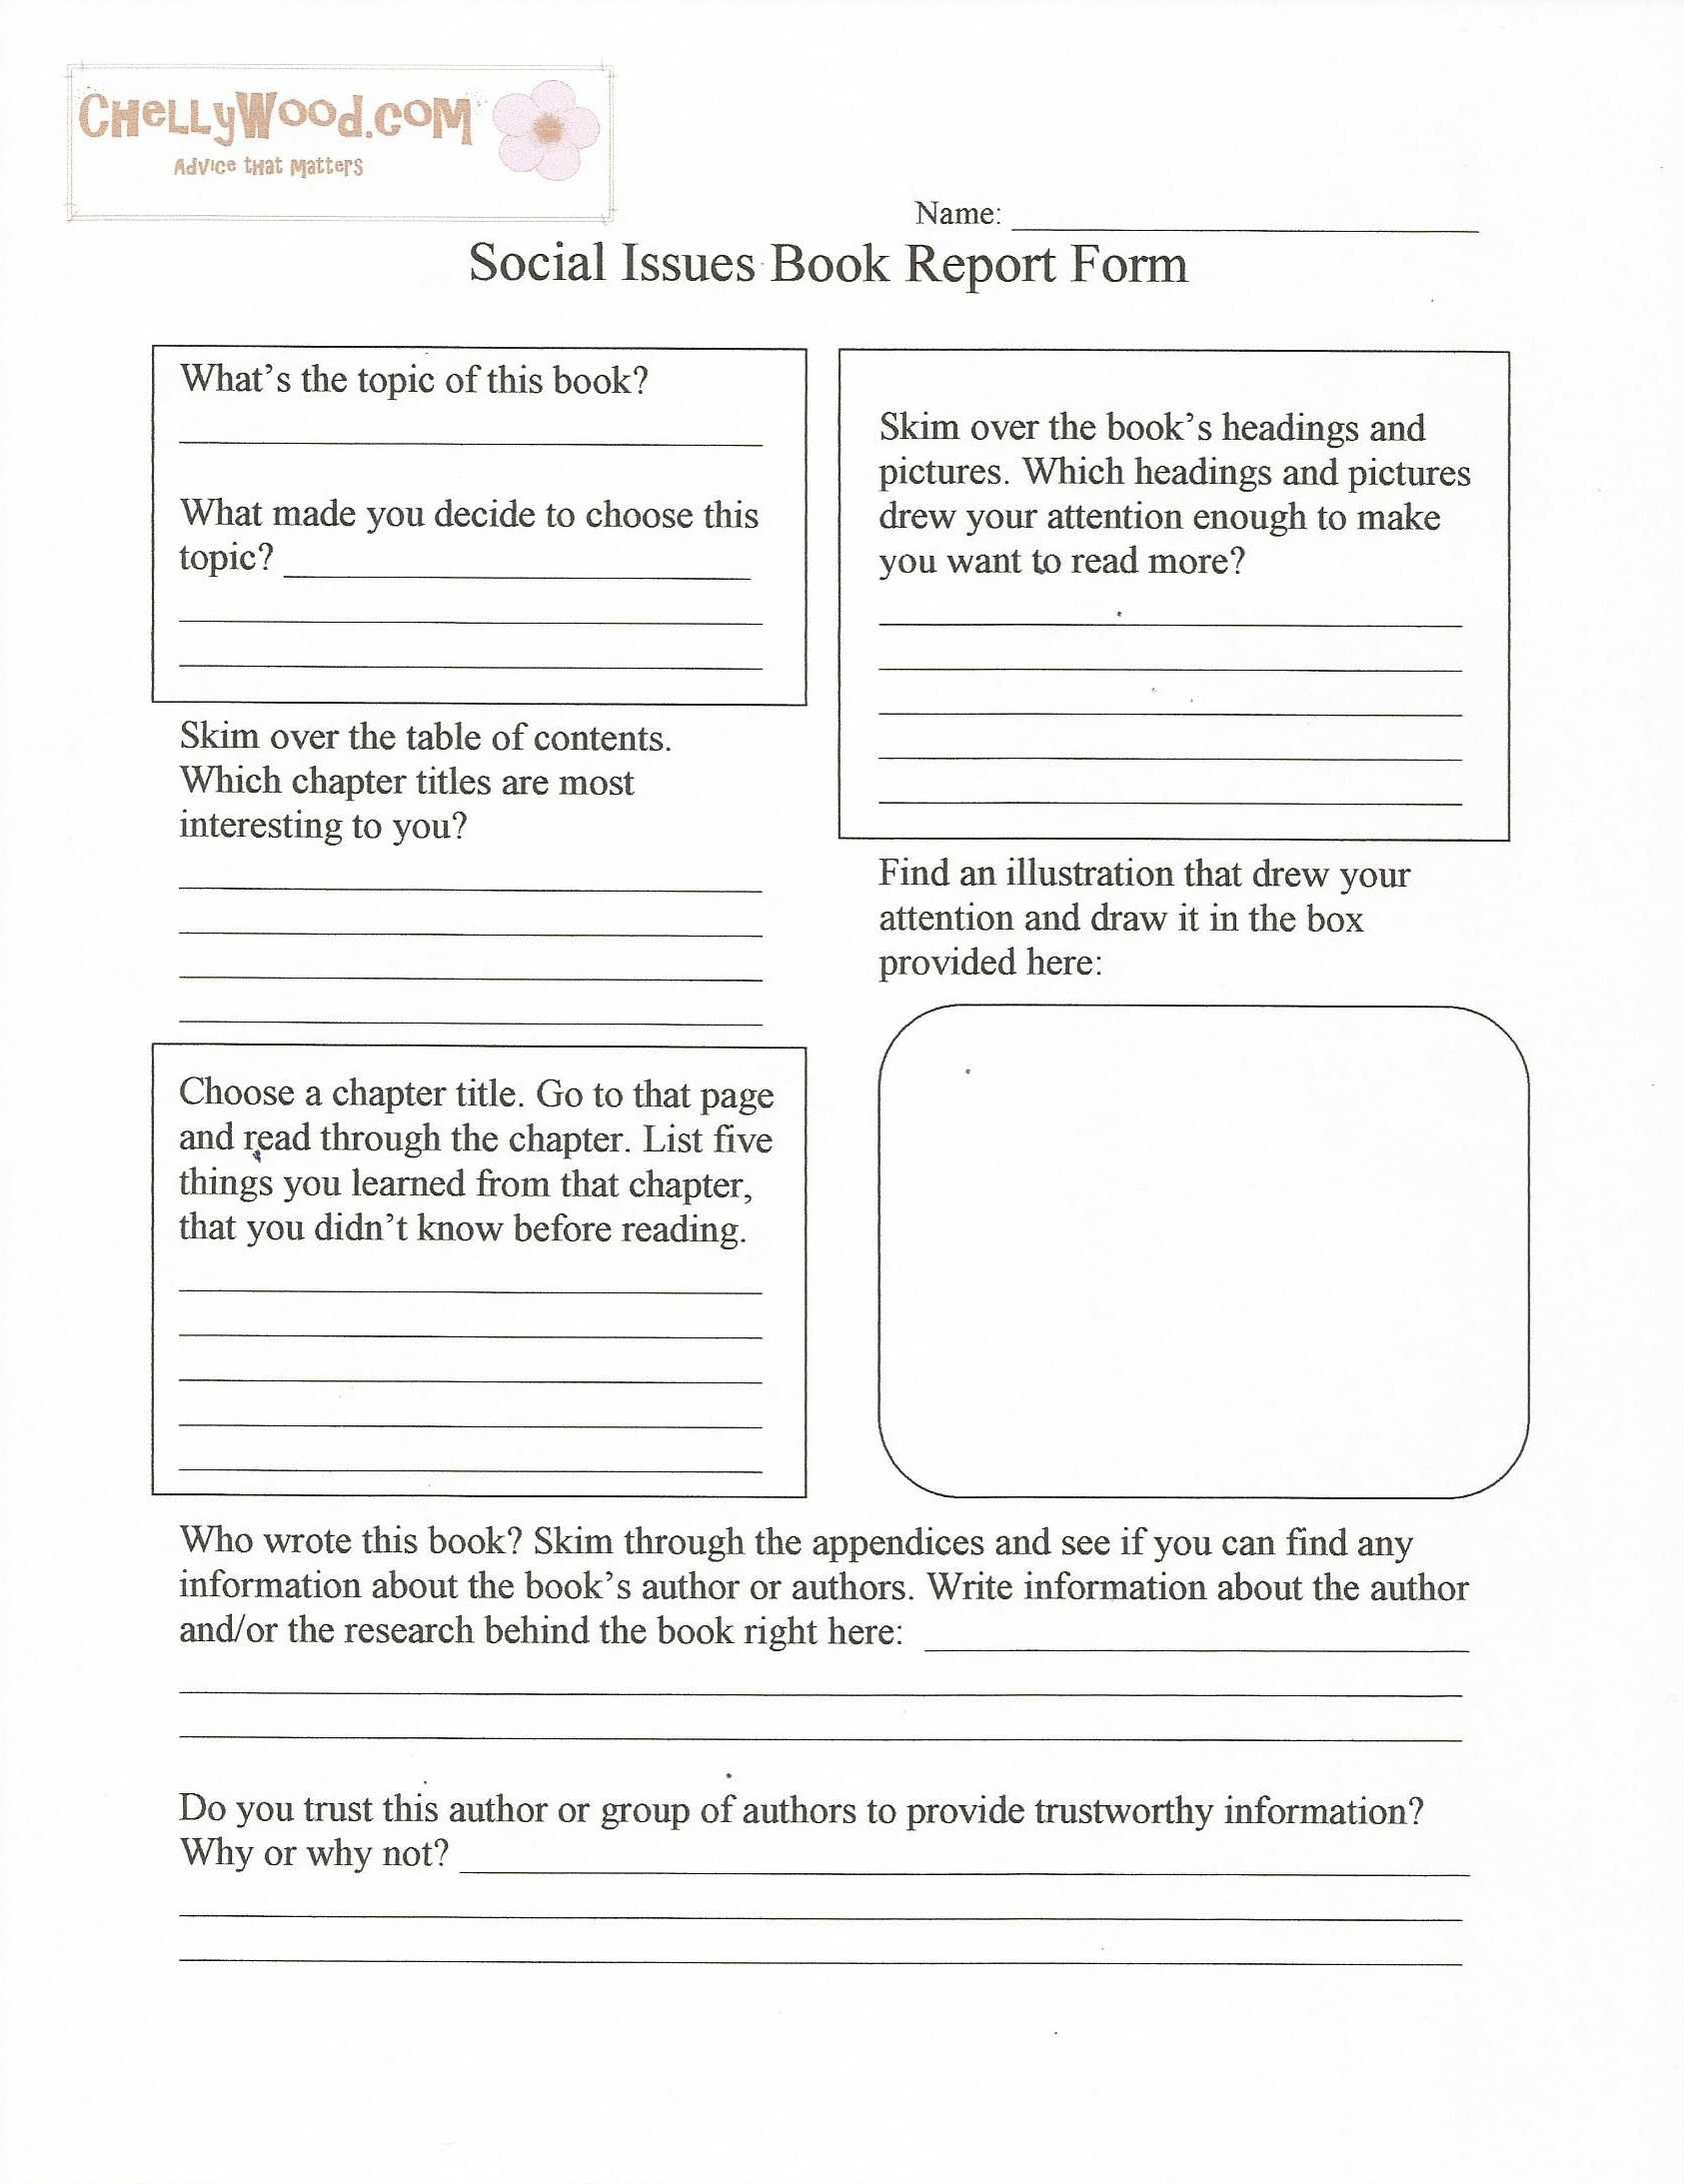 Social Issues Nonfiction Book Report Form–Free Printable With Regard To Nonfiction Book Report Template